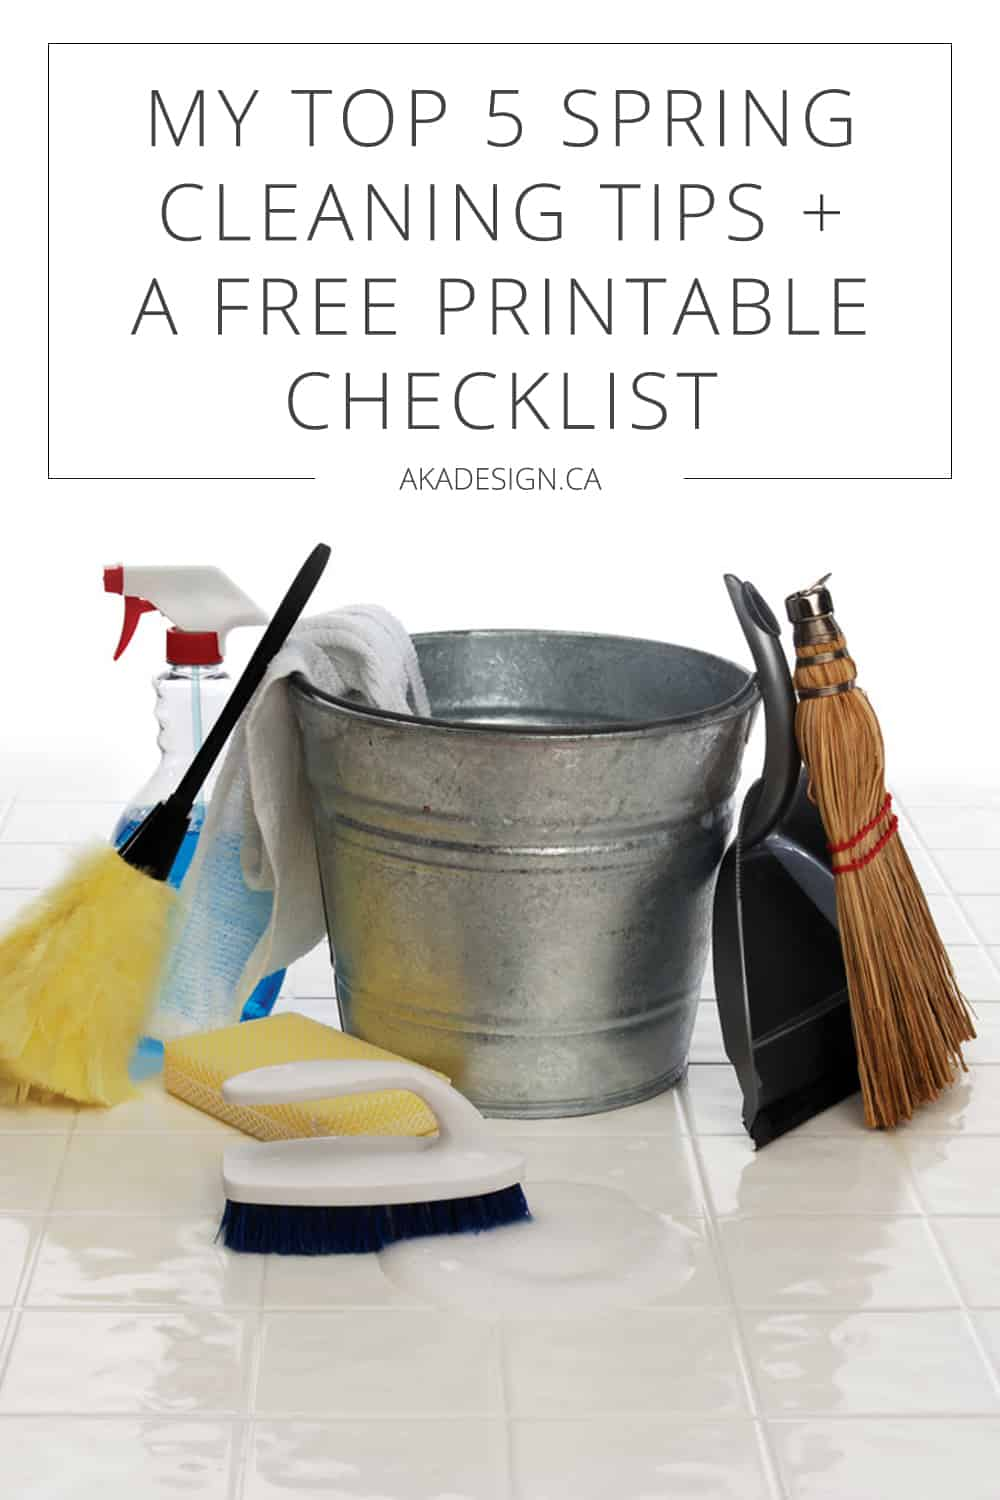 My Top 5 Spring Cleaning Tips + a Free Printable Checklist